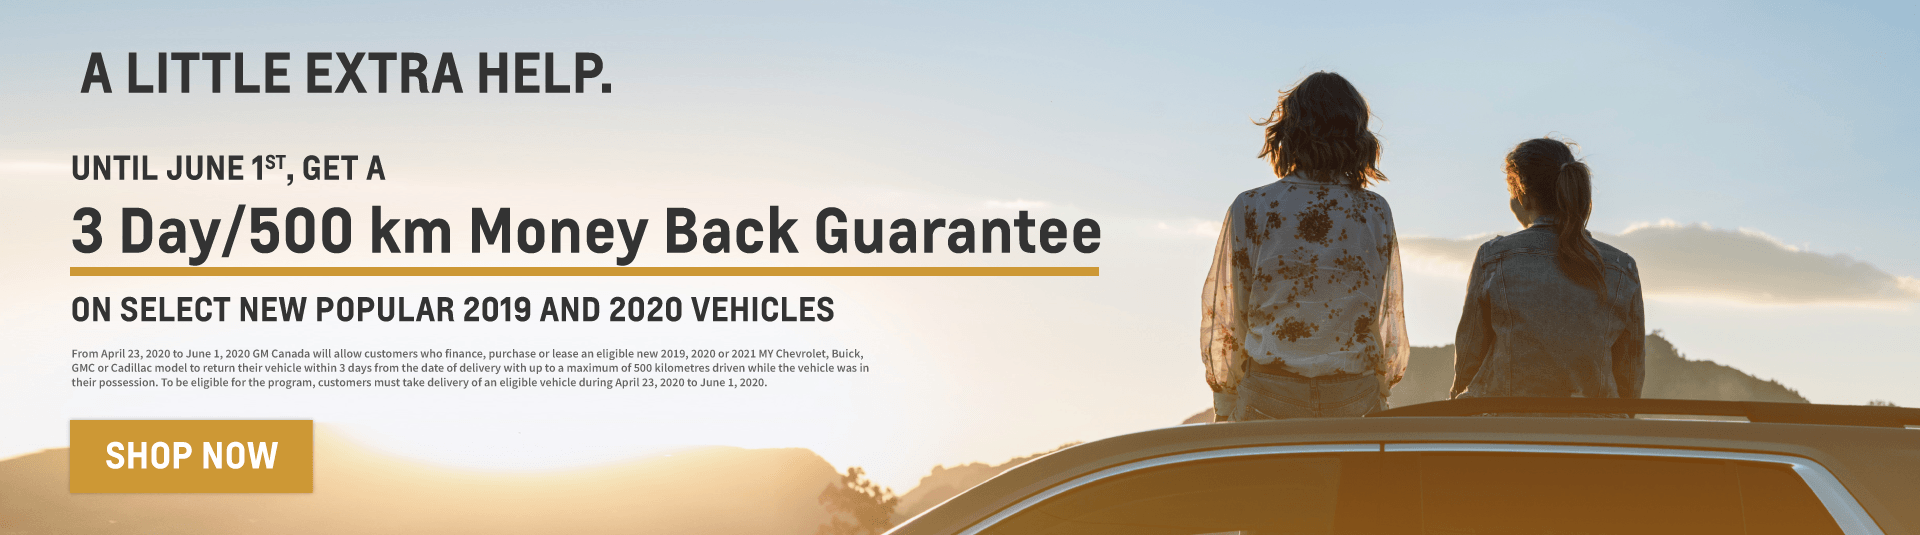 3 Day/500km Money Back Guarantee on Chevrolet, Buick and GMC Vehicles